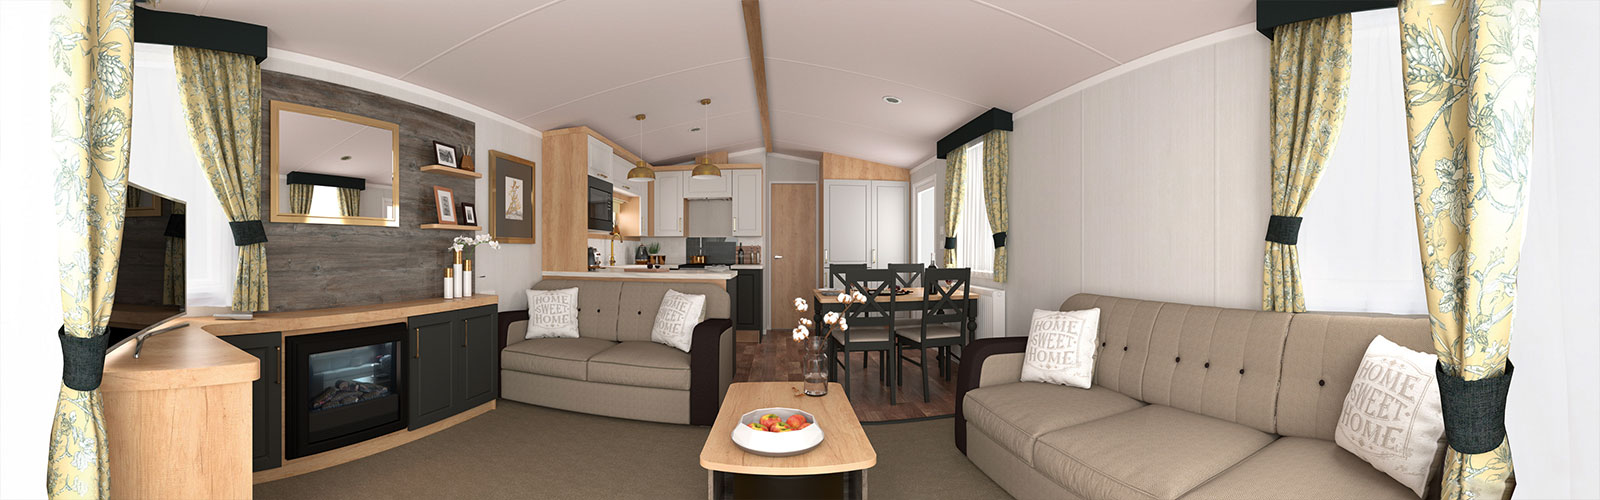 Westfield Caravans | Caravans for sale in the Lake District